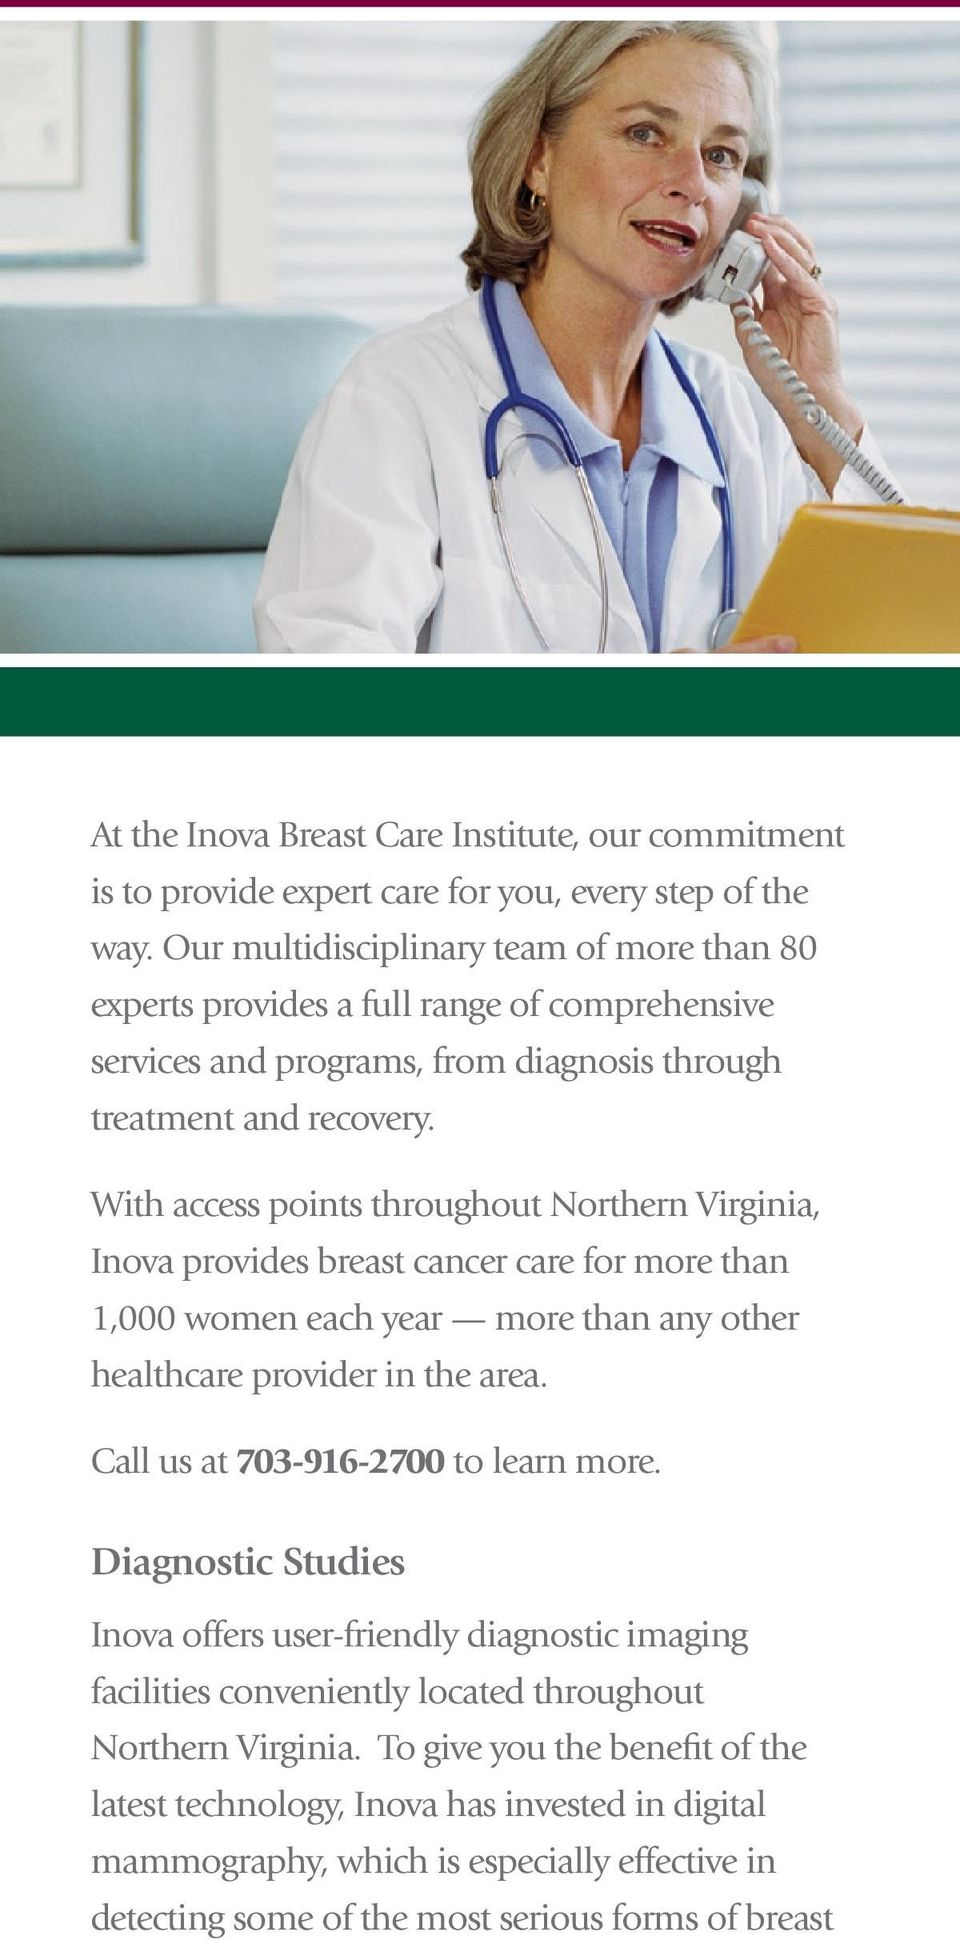 With access points throughout Northern Virginia, Inova provides breast cancer care for more than 1,000 women each year more than any other healthcare provider in the area.